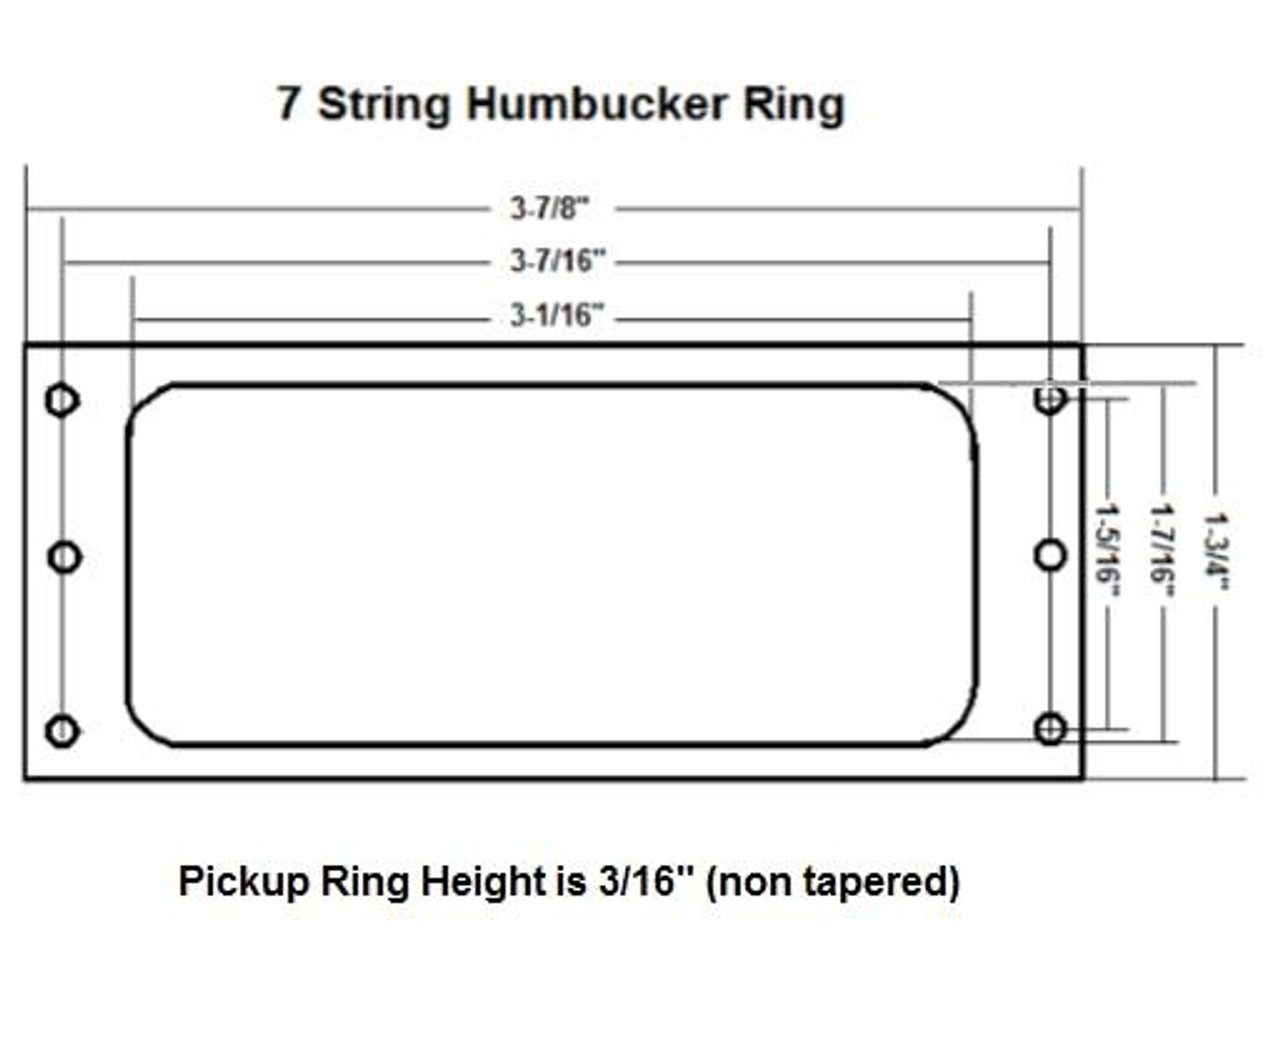 7-String Humbucker Ring